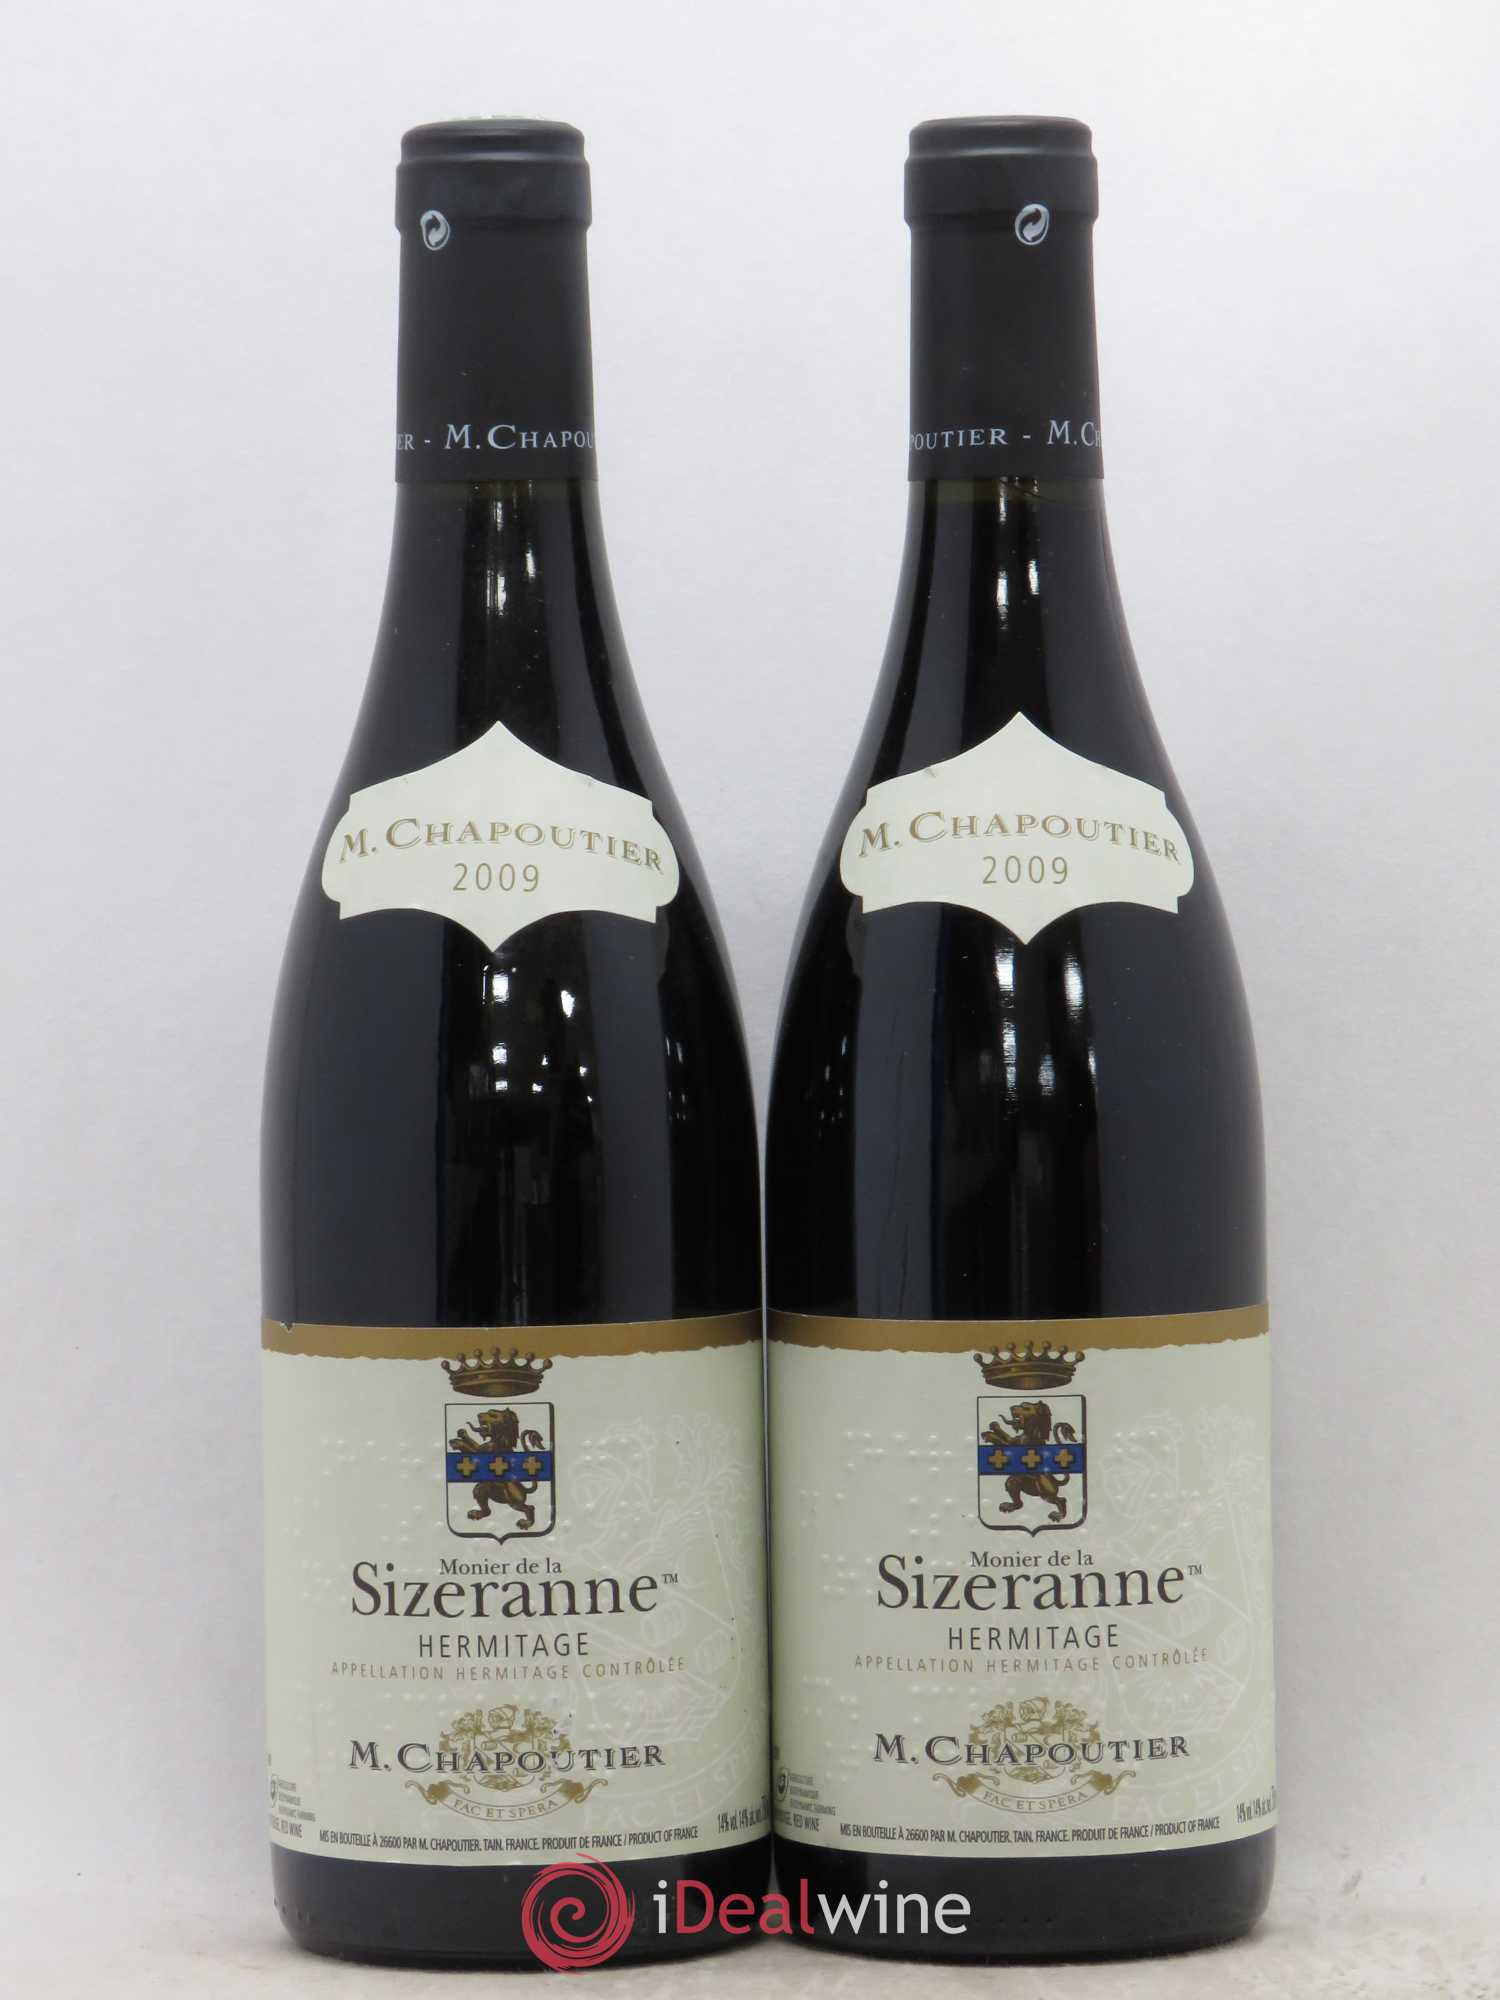 Hermitage La Sizeranne Chapoutier  2009 - Lot of 2 Bottles